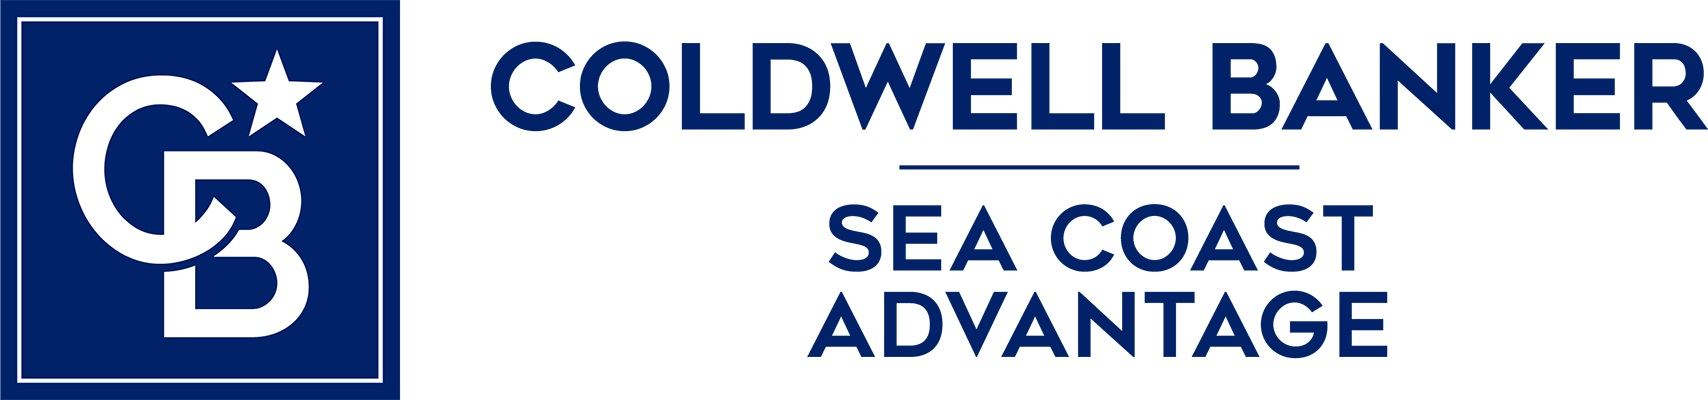 Christina Dawson - Coldwell Banker Sea Coast Advantage Realty